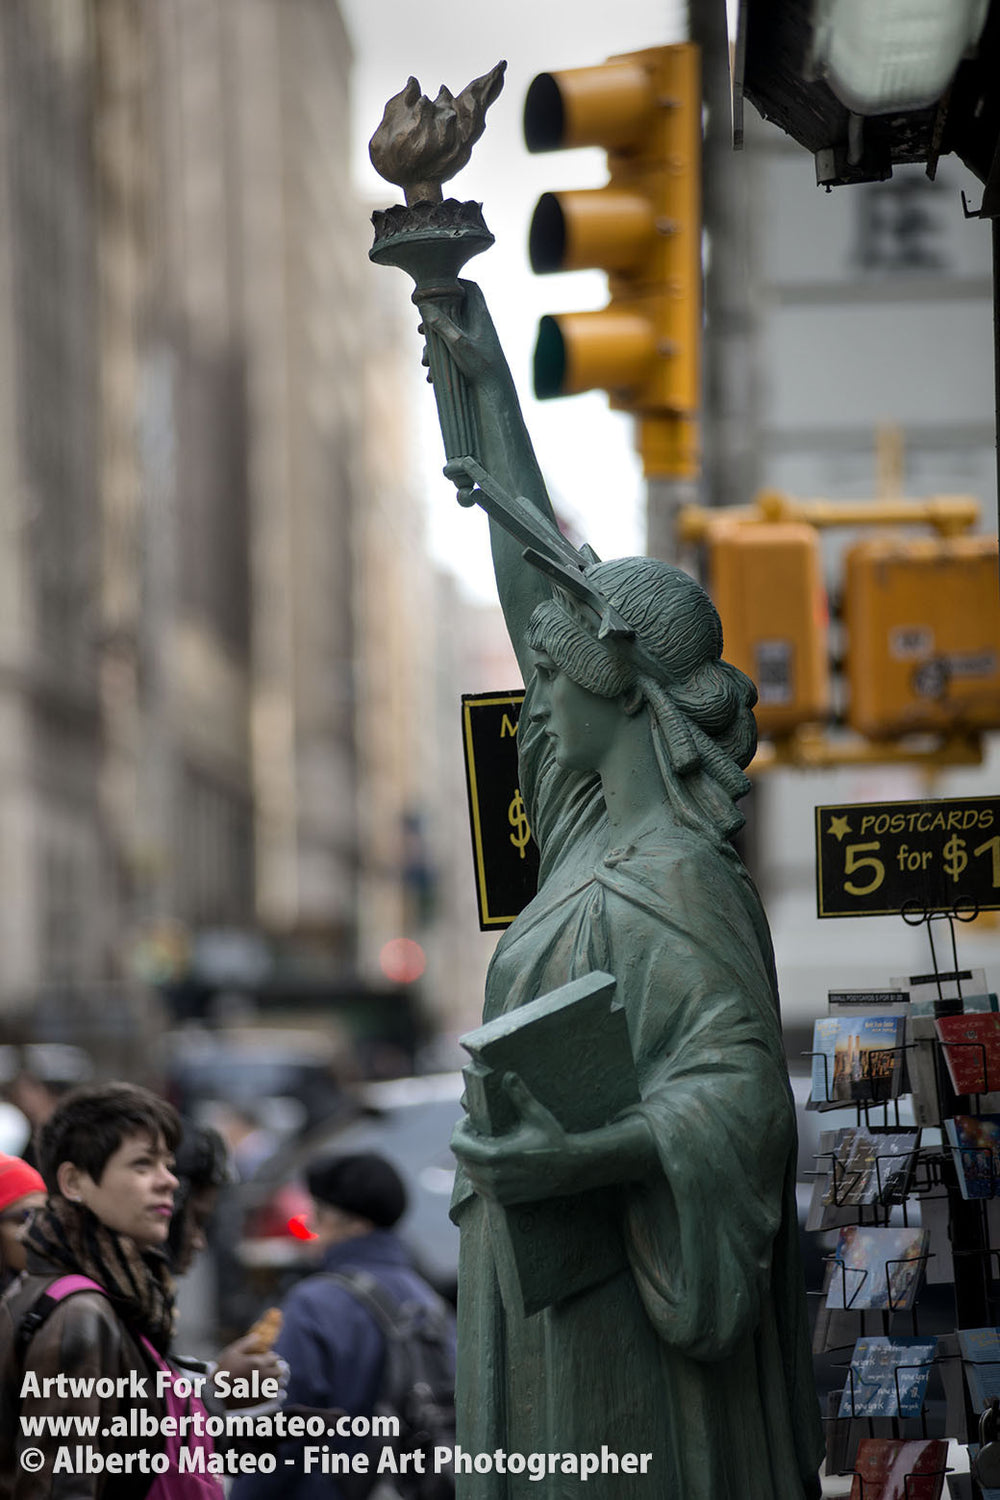 Statue of Liberty, Fifth Avenue, New York. | Open Edition Fine Art Print.